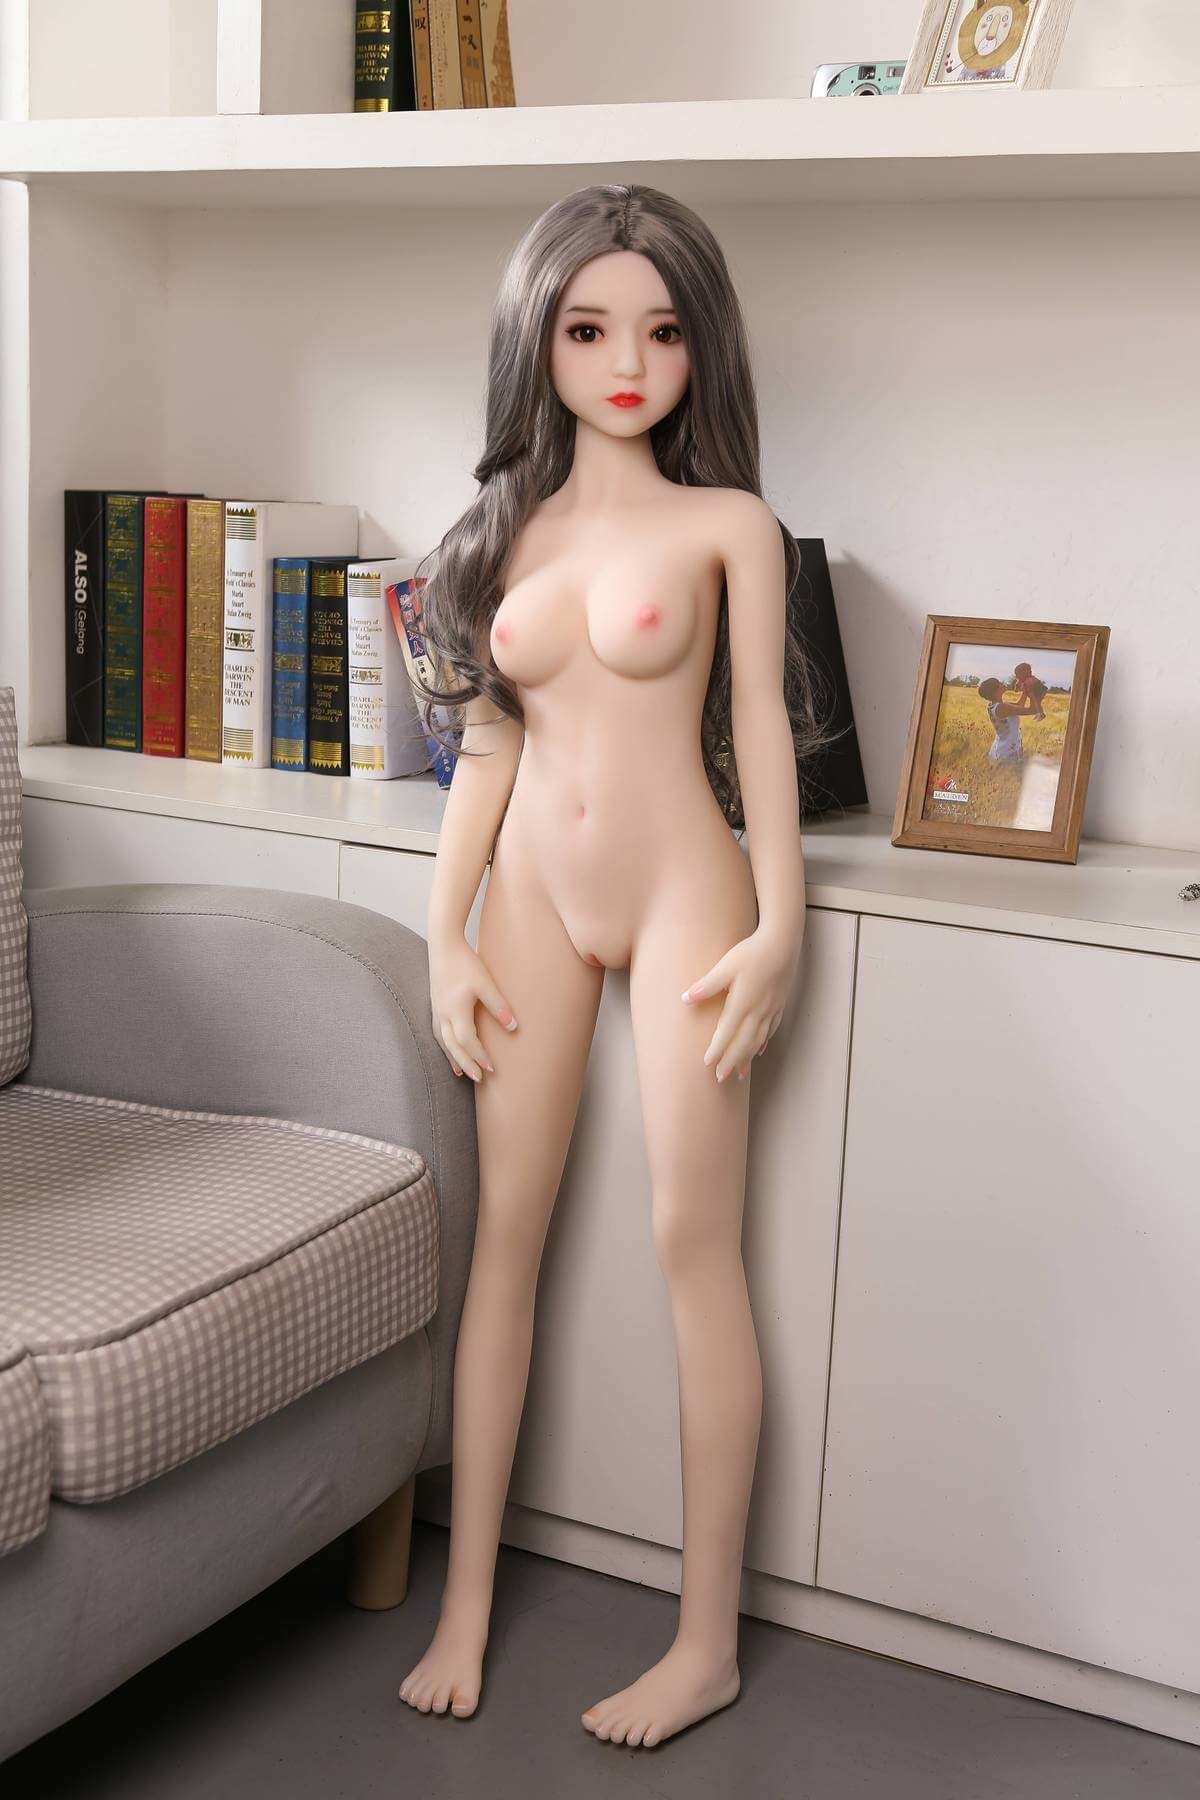 125CM Young Looking Sex Doll - Xanthe